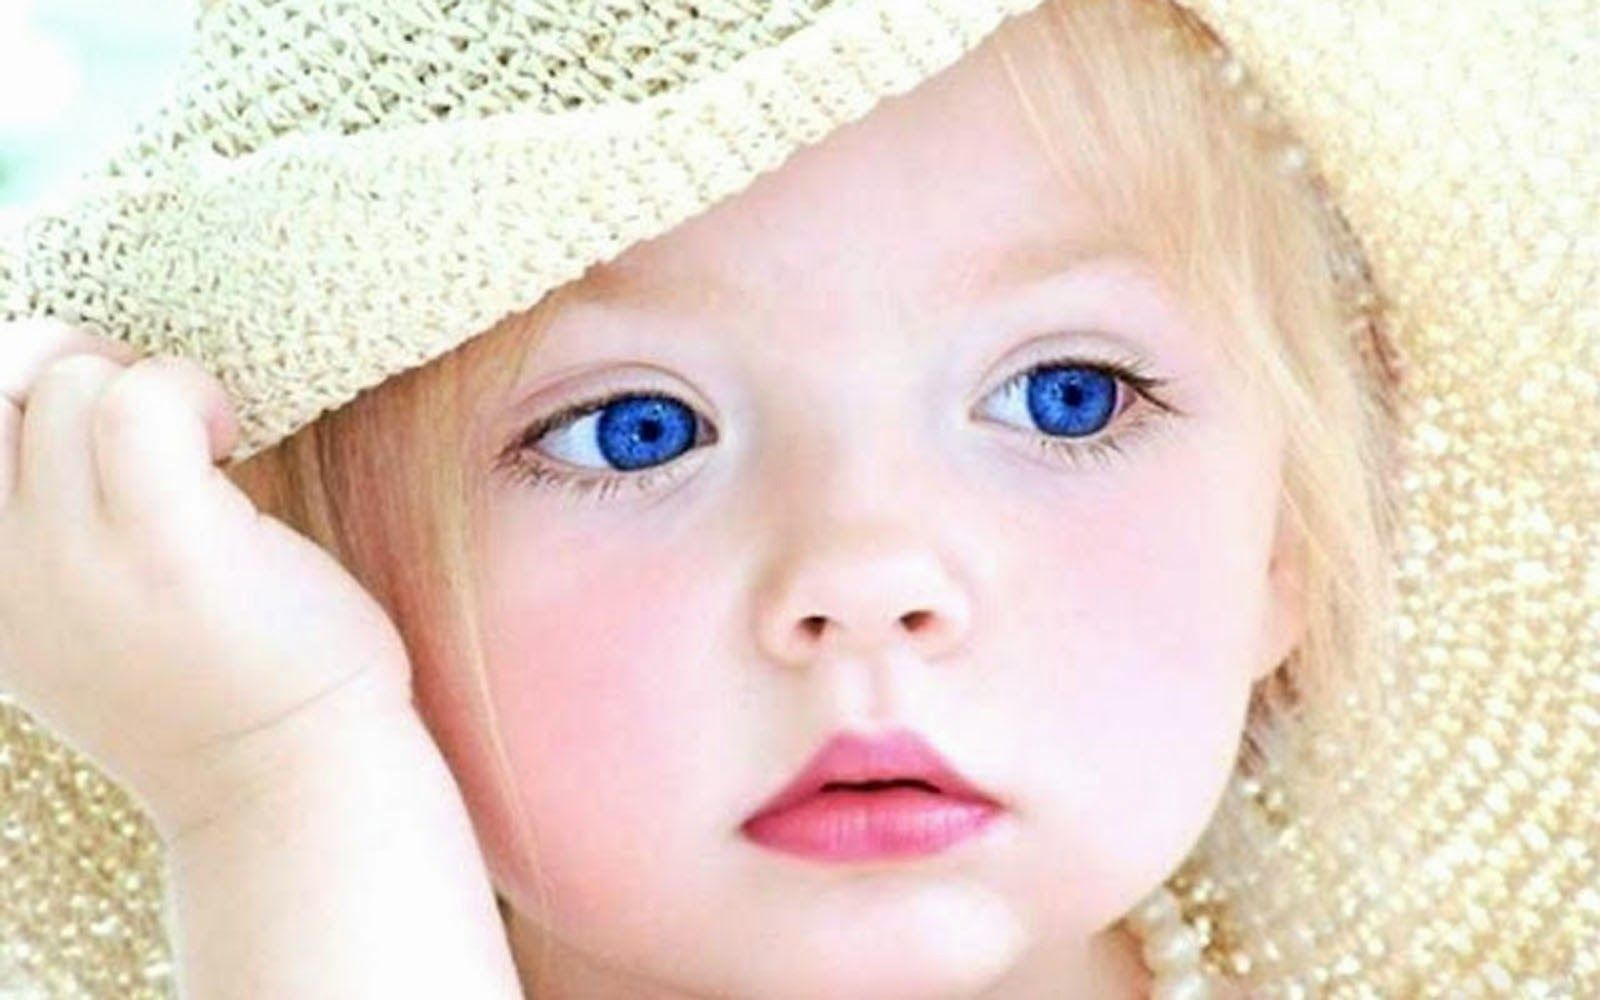 Free cute wallpapers download baby pics free download, hd.